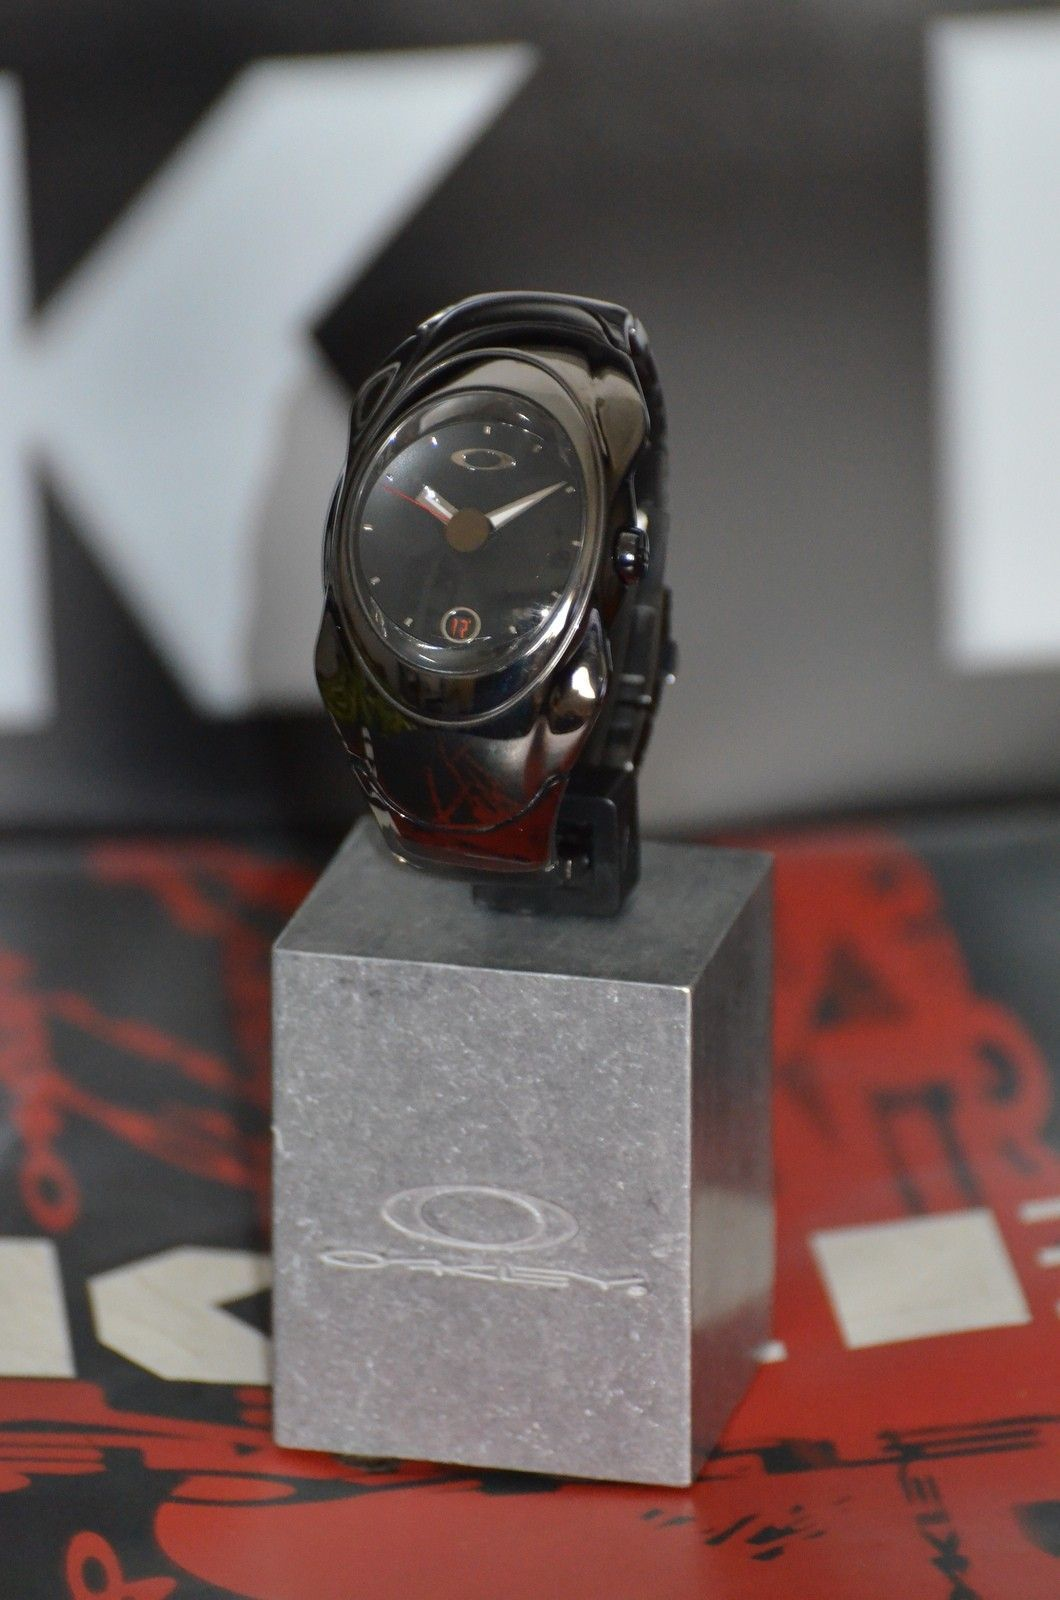 Or WTT TimeBomb Ion Plated Stainless Steel-Black Watch - 8223852266_0ec642c060_h.jpg